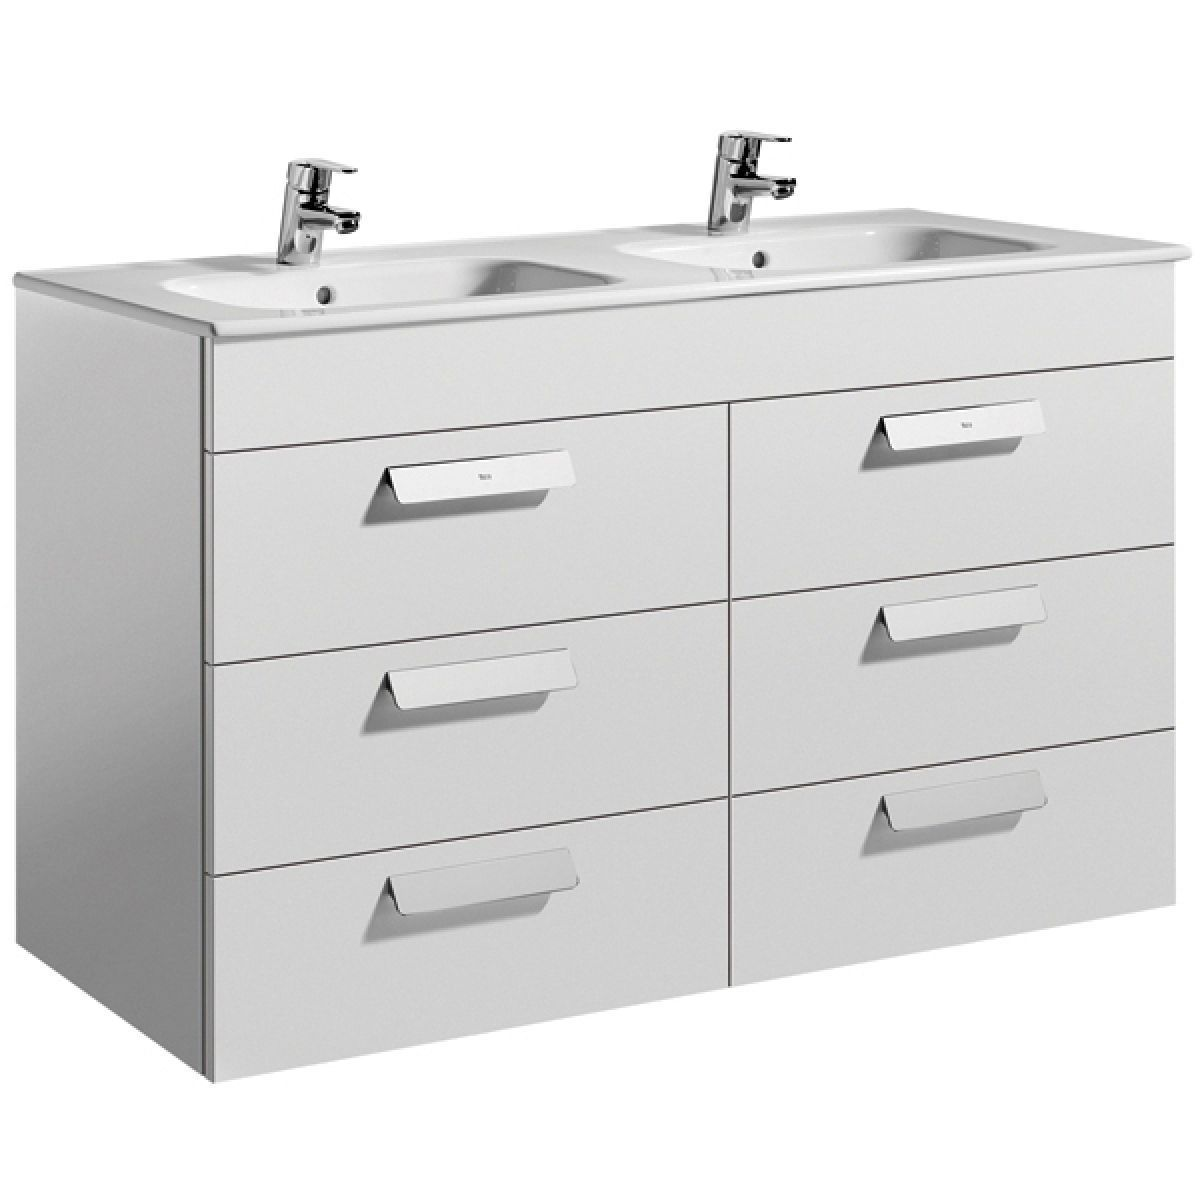 sink with vanity unit.  Roca Debba Double Basin Vanity Unit With Drawers UK Bathrooms